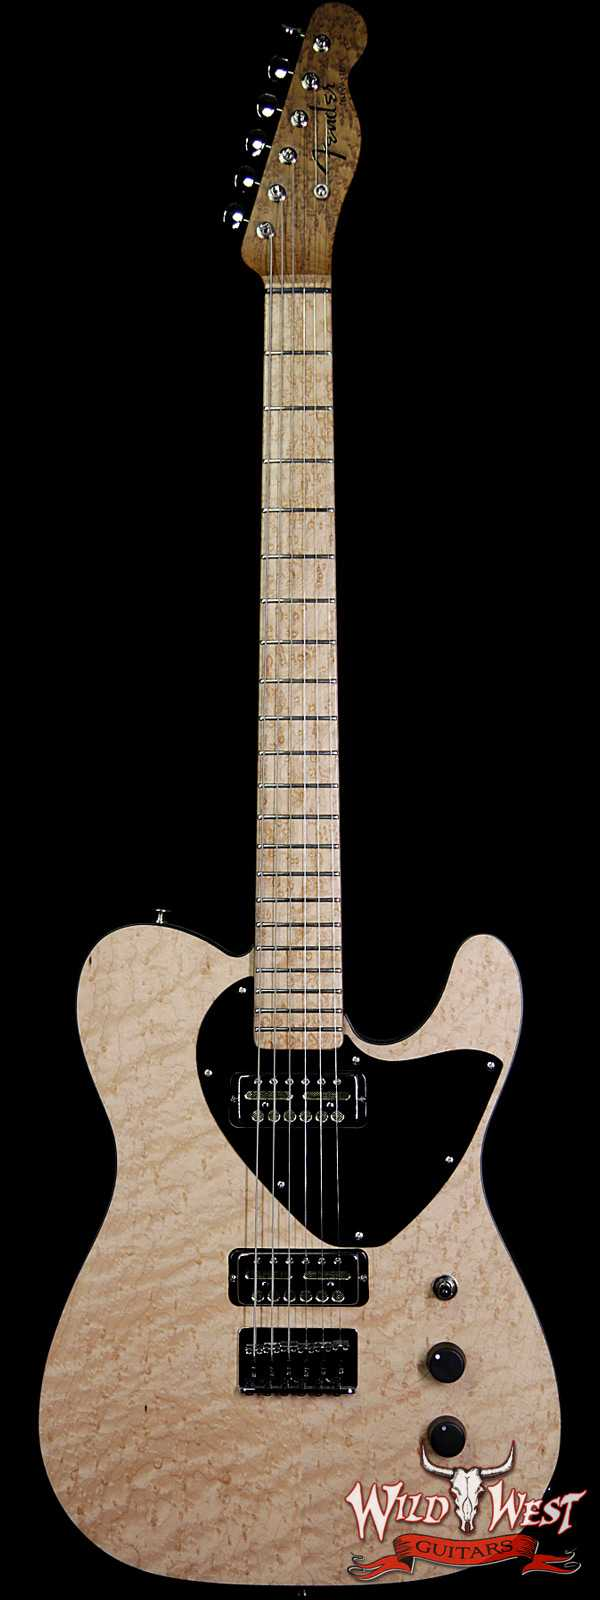 Fender Custom Shop NAMM #434 Jason Smith Masterbuilt 60's Telecaster NOS Birdseye Maple Natural